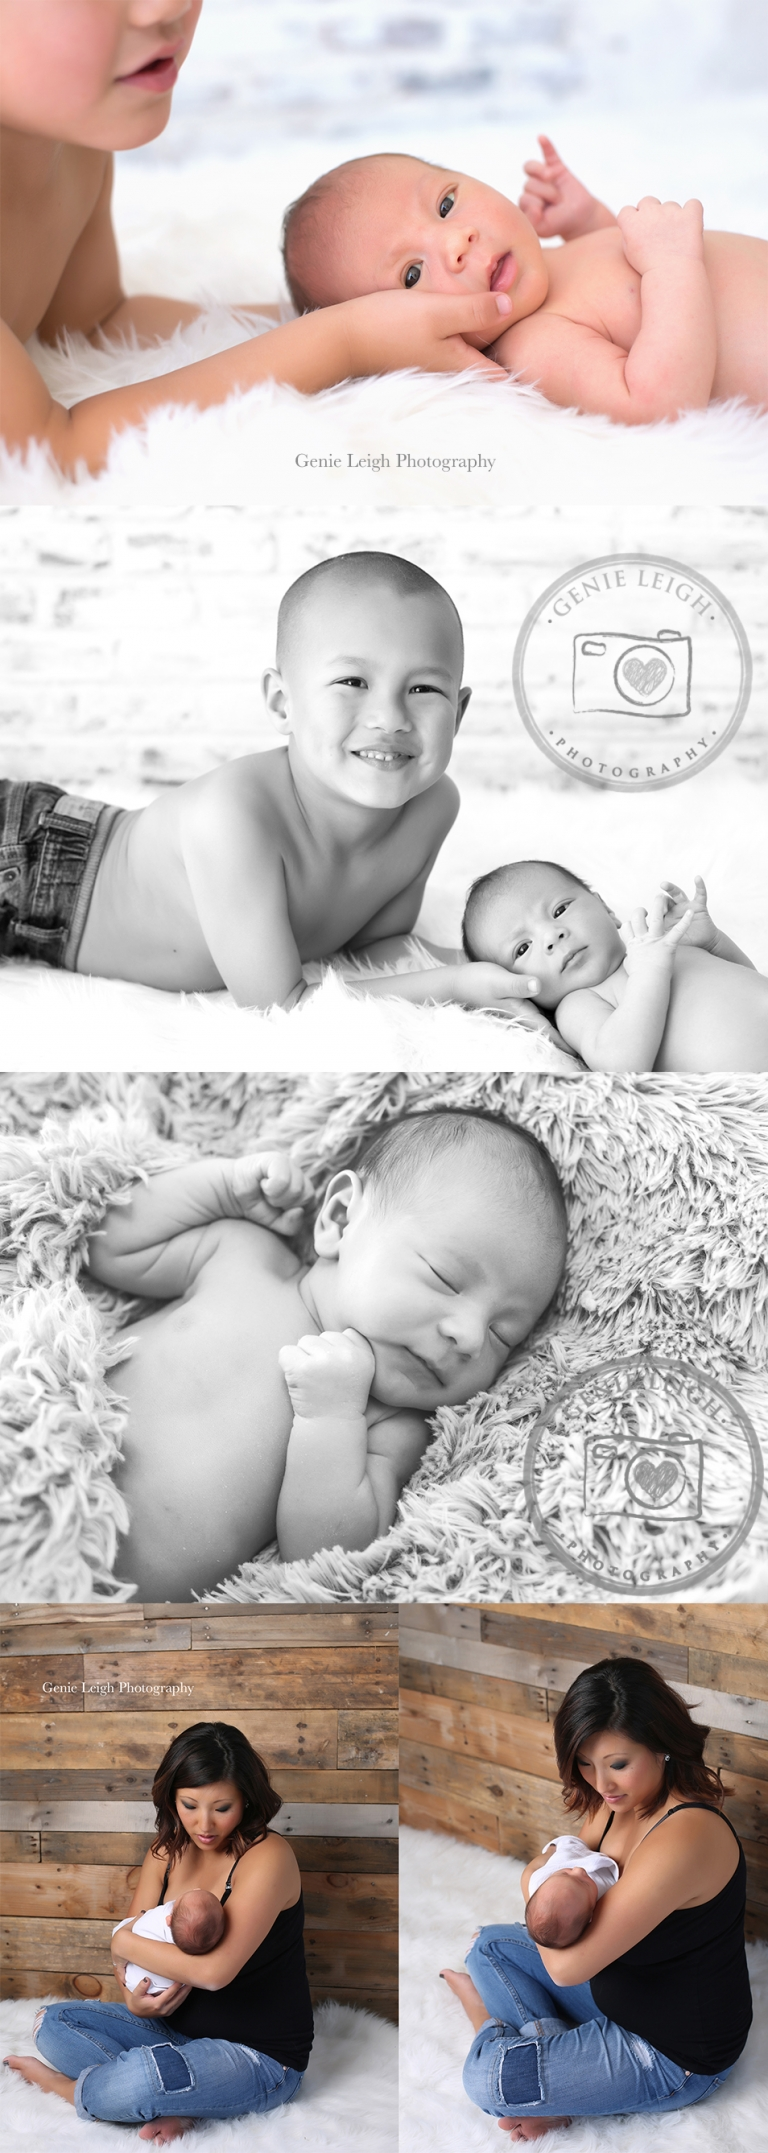 Newborn, Studio, Family, Photography, Session, What to wear, Natural, Simple Family Pose, Big Brother, Sibling Photo session, Genie Leigh Photography